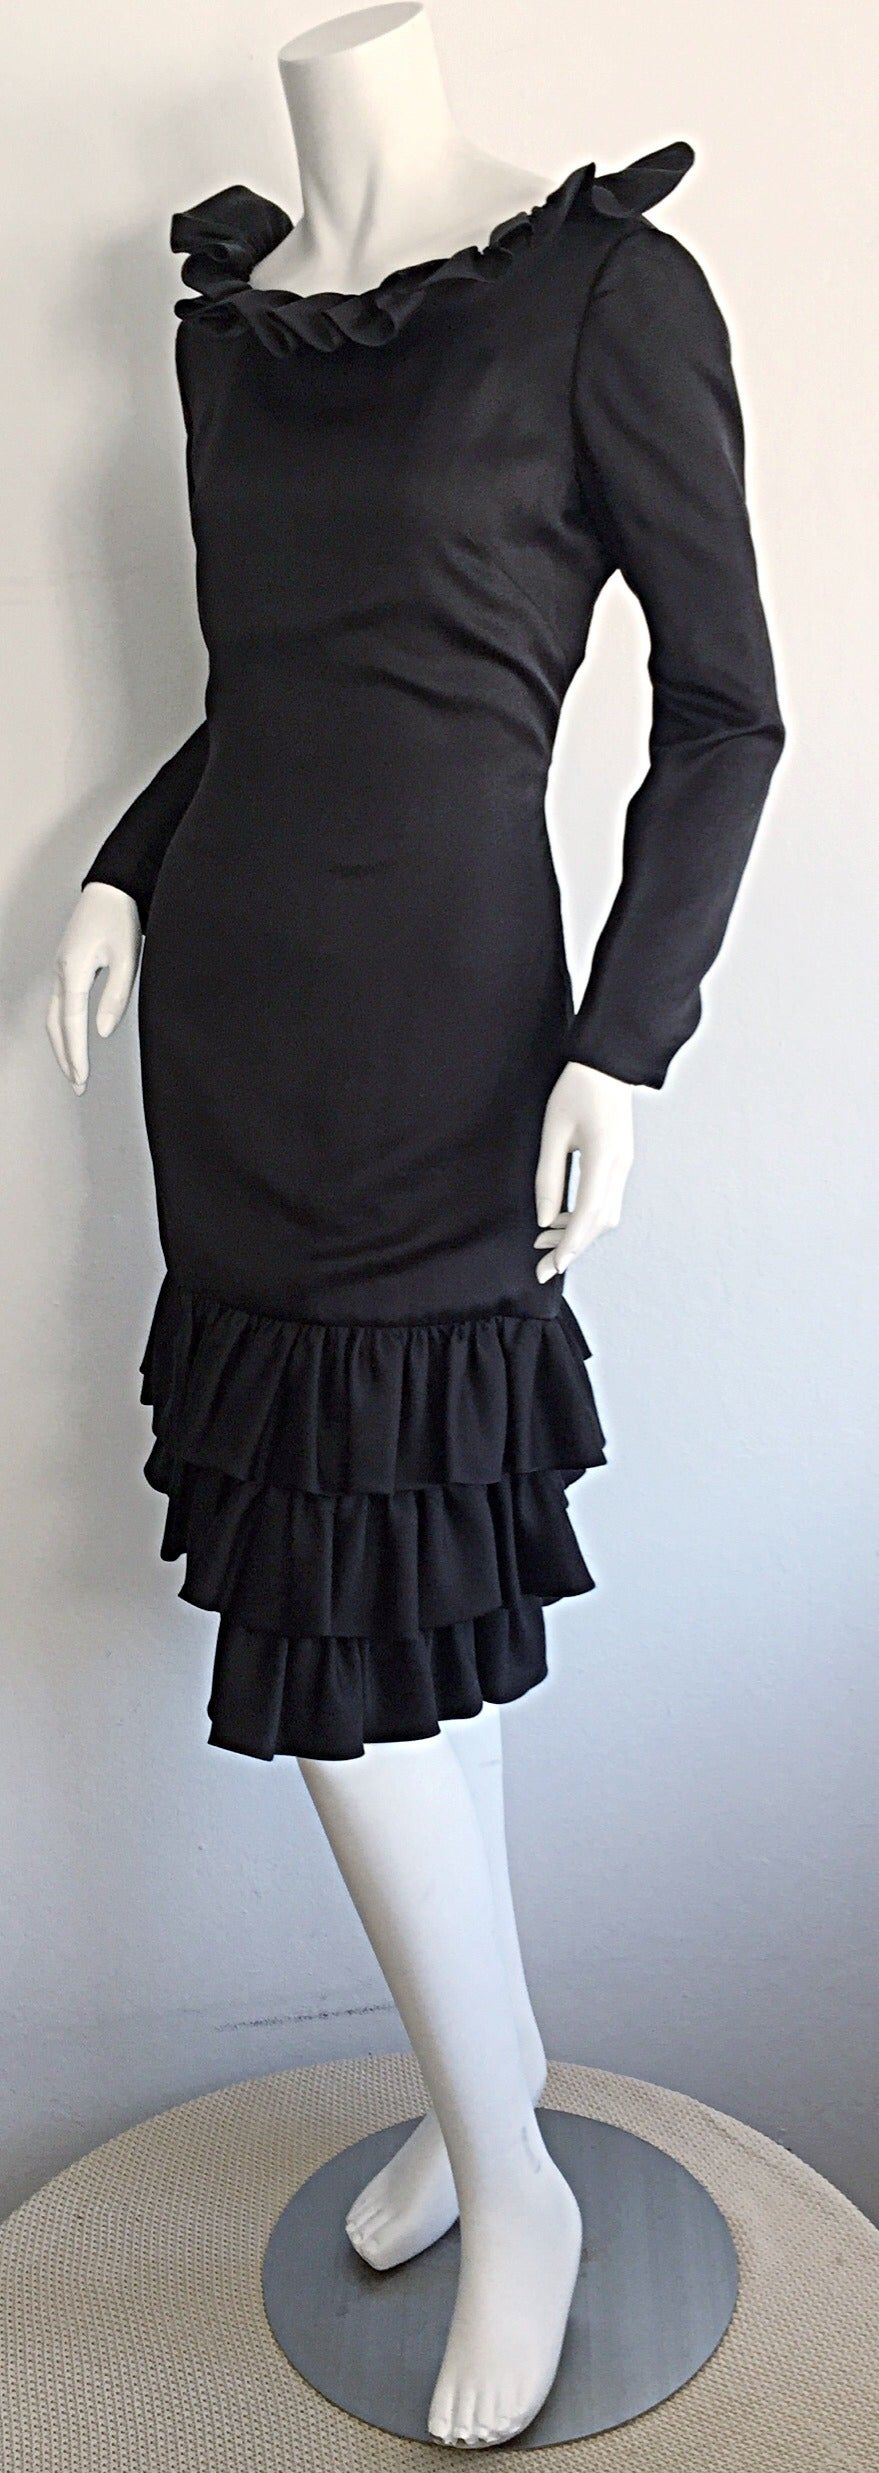 1960s 60s Adele Simpson Black Silk Drop Waist Tiered Ruffle Long Sleeve Dress In Excellent Condition For Sale In Chicago, IL